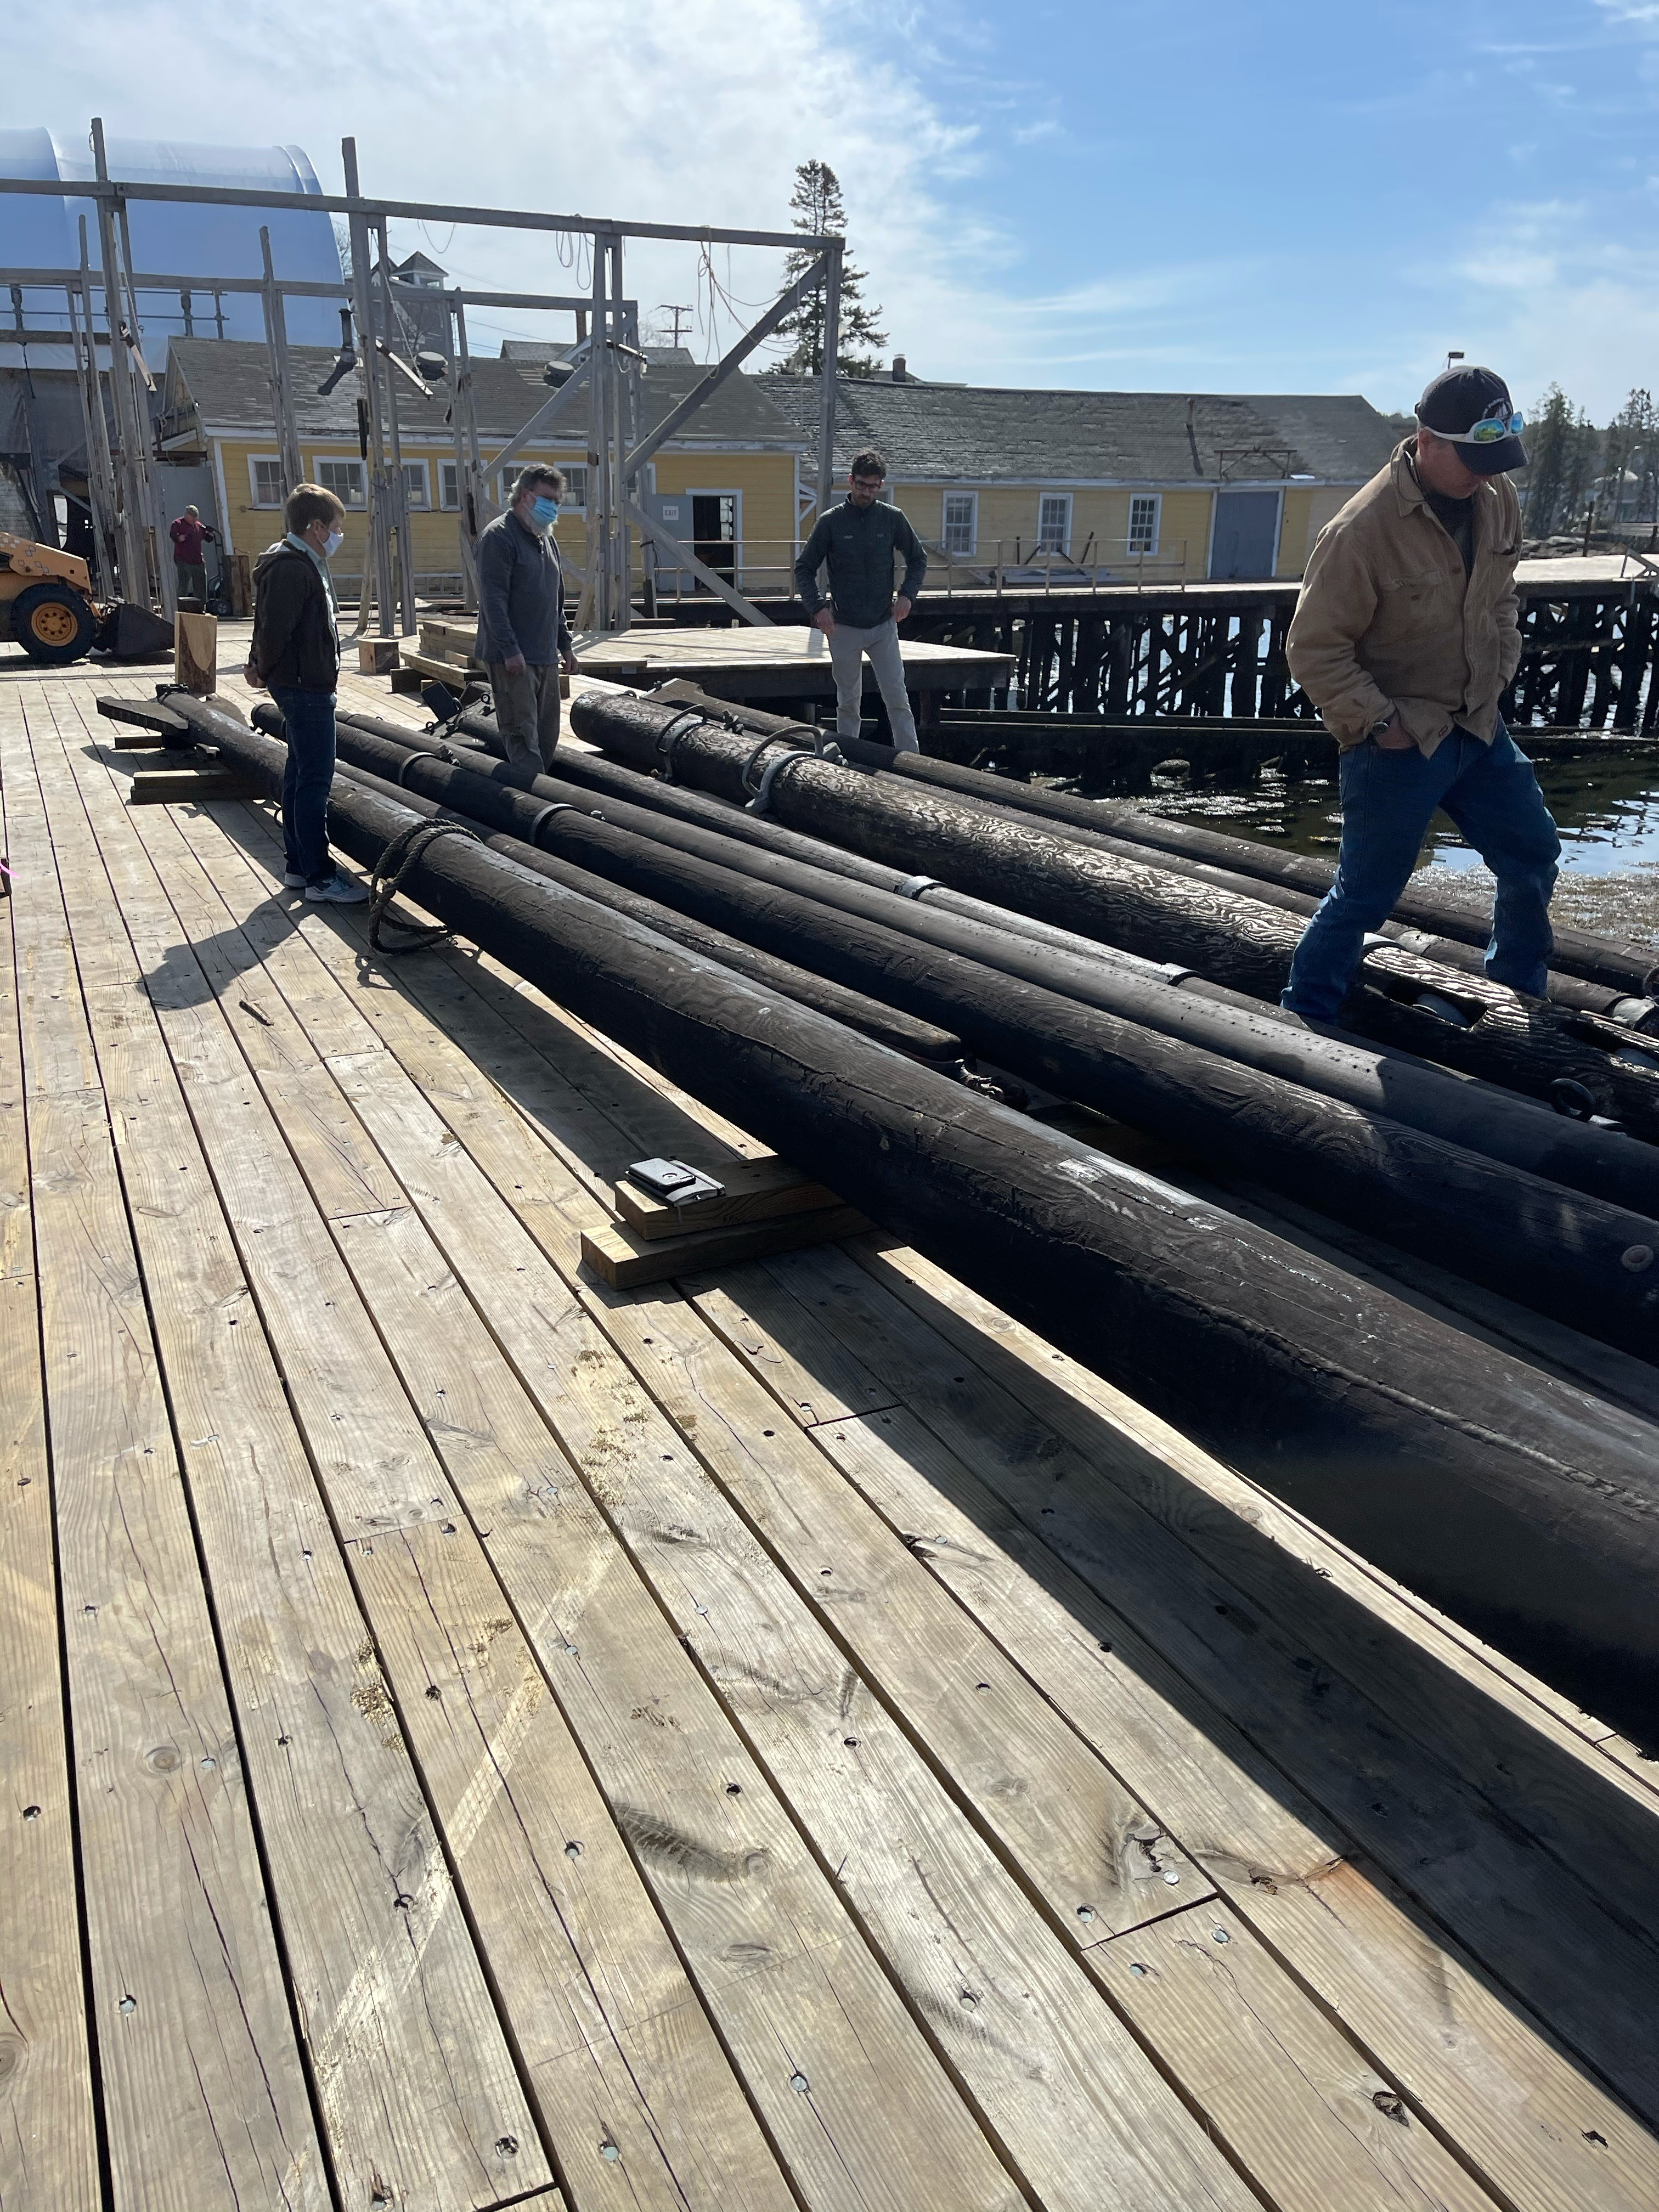 The spars were delivered to the Shipyard where they were  inspected by Captain Tiffany Krihwan, Shipwright David Short, Project Manager Dennis Gunderson and Tom Ward, the rigging contractor.  After a thorough inspection of their condition a decision will be made to use them or to take the hardware off and make new spars.